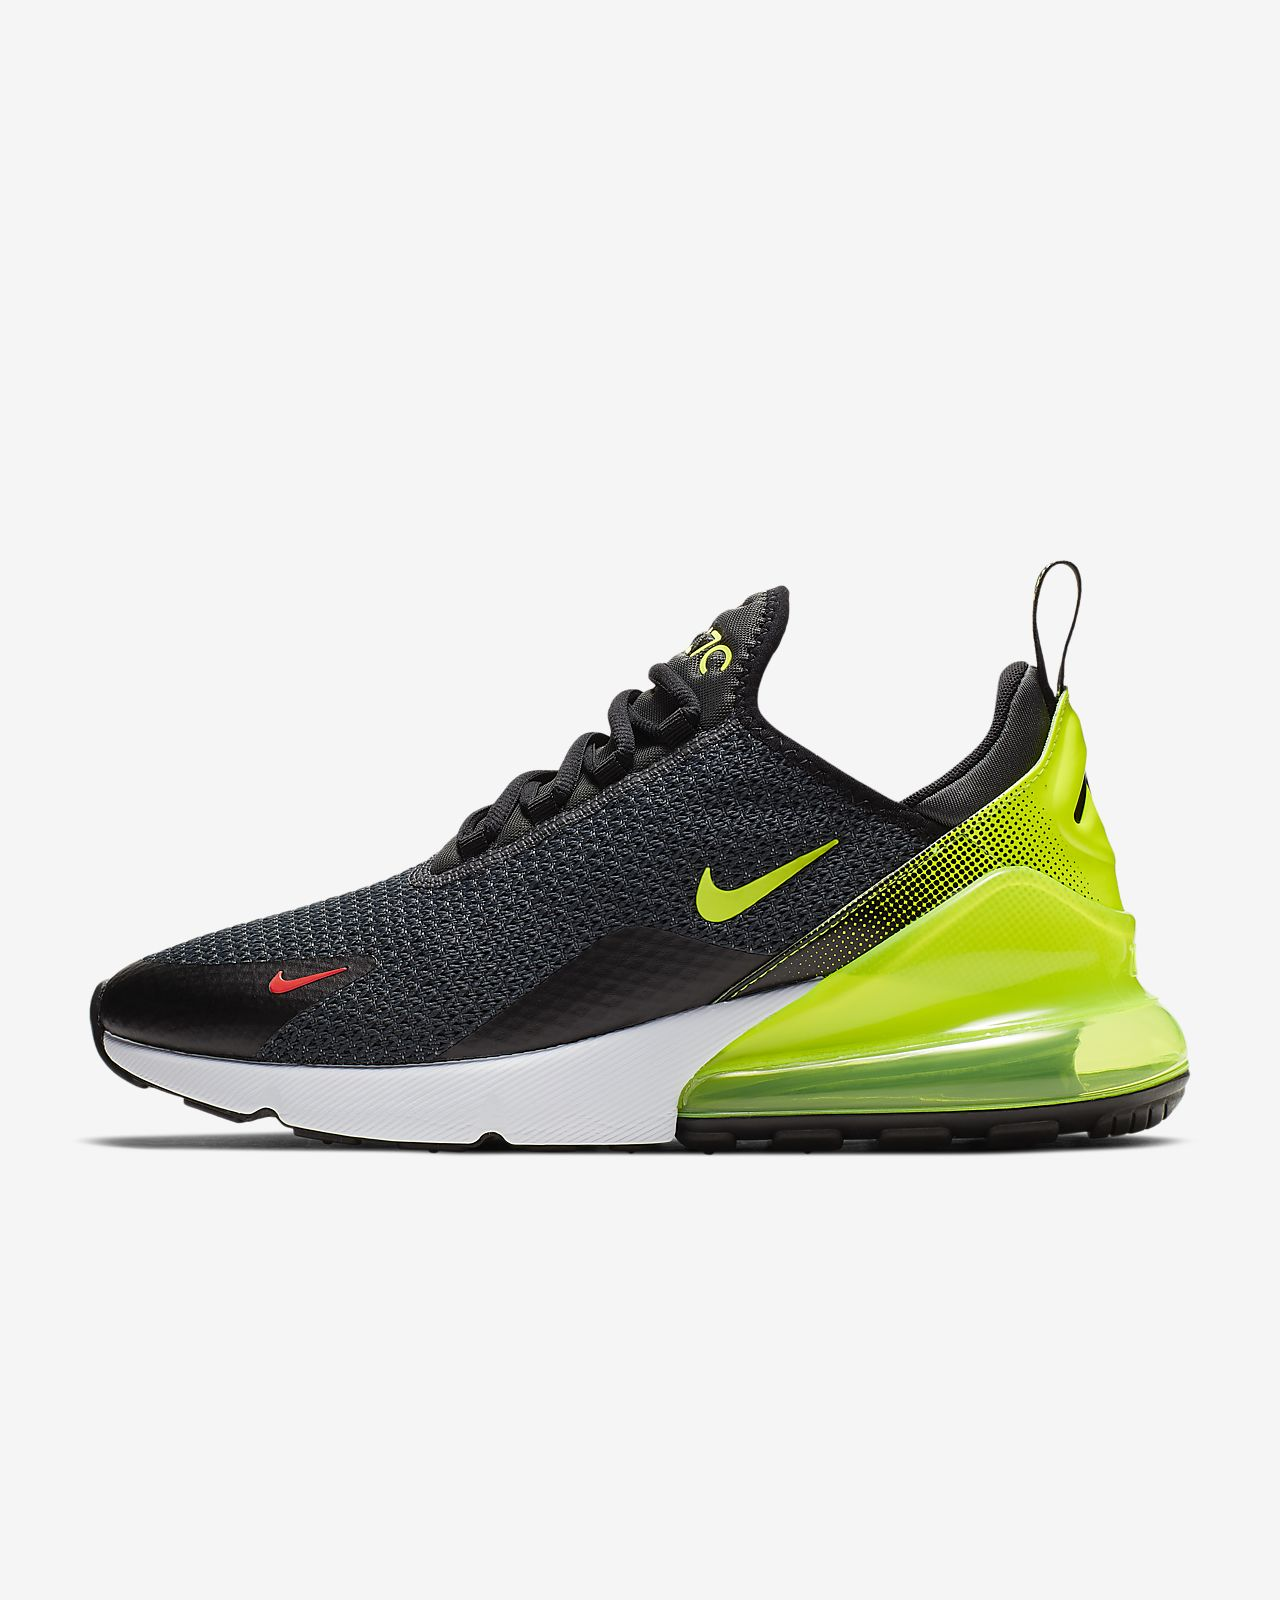 60b1e89eb3 Nike Air Max 270 SE Men's Shoe. Nike.com